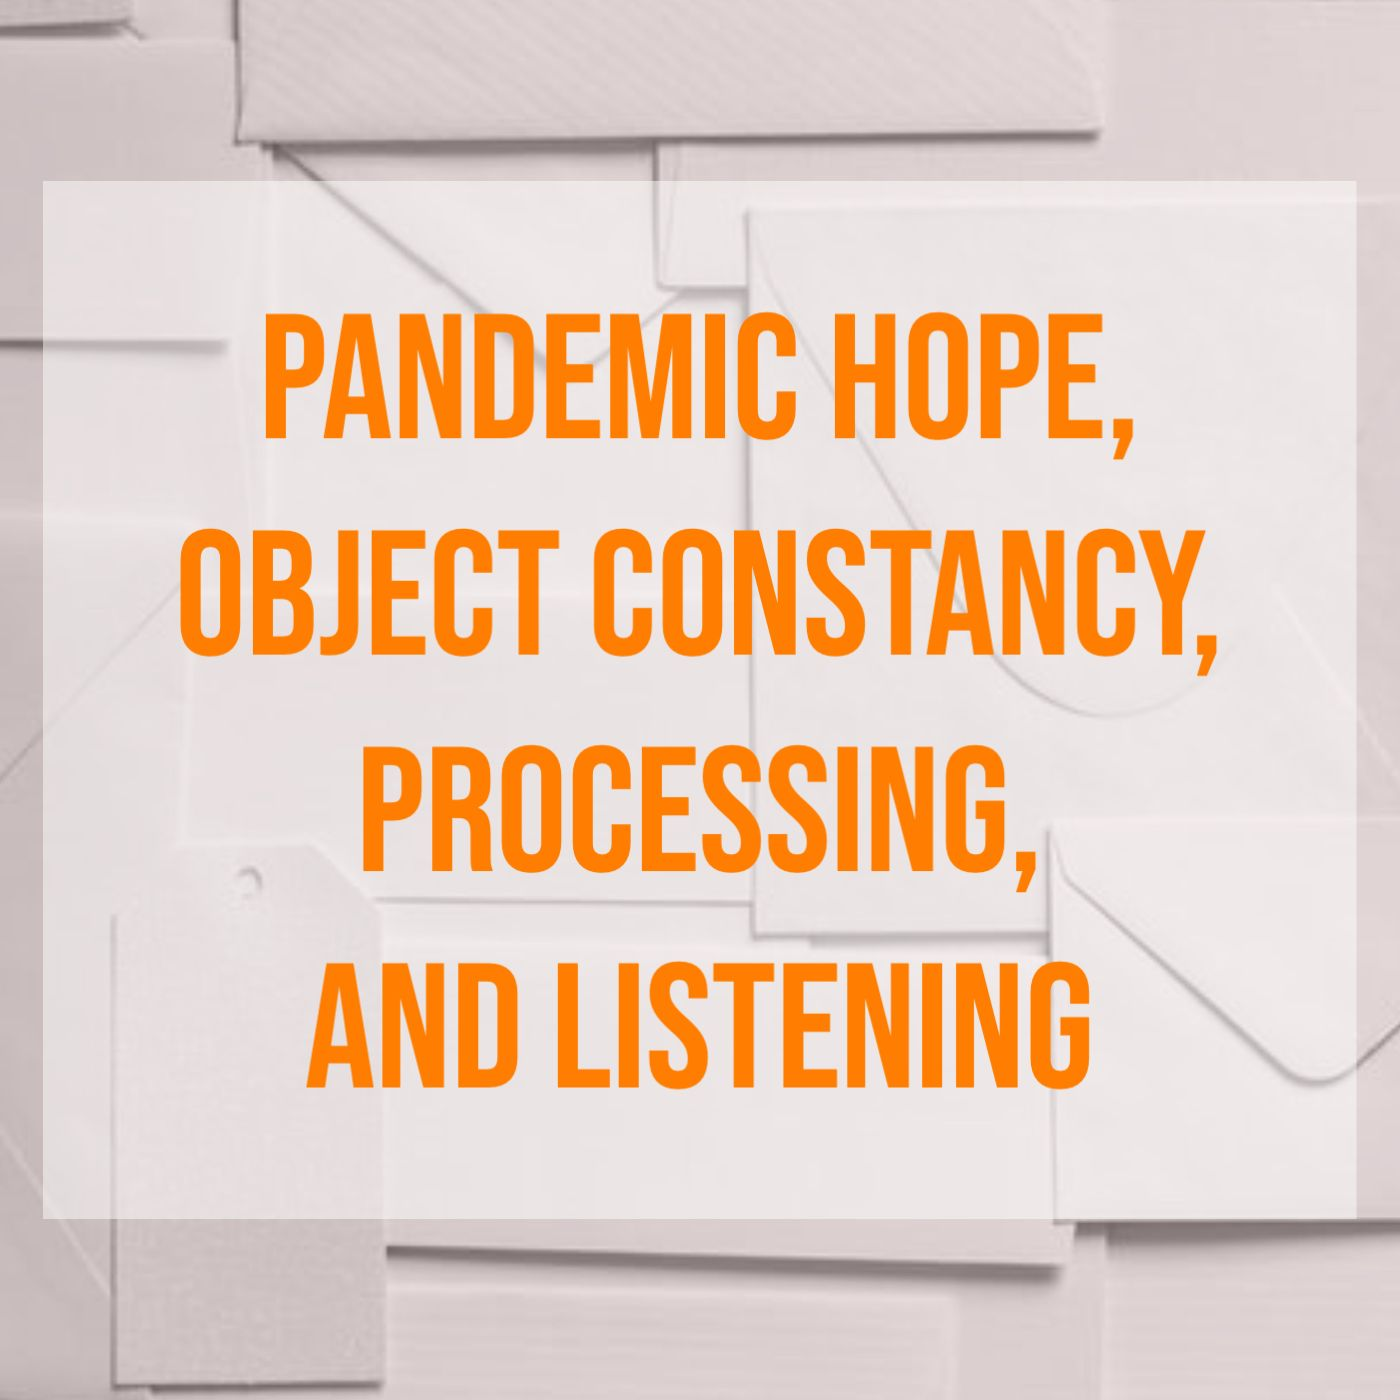 Pandemic Hope, Object Constancy, Processing, and Listening